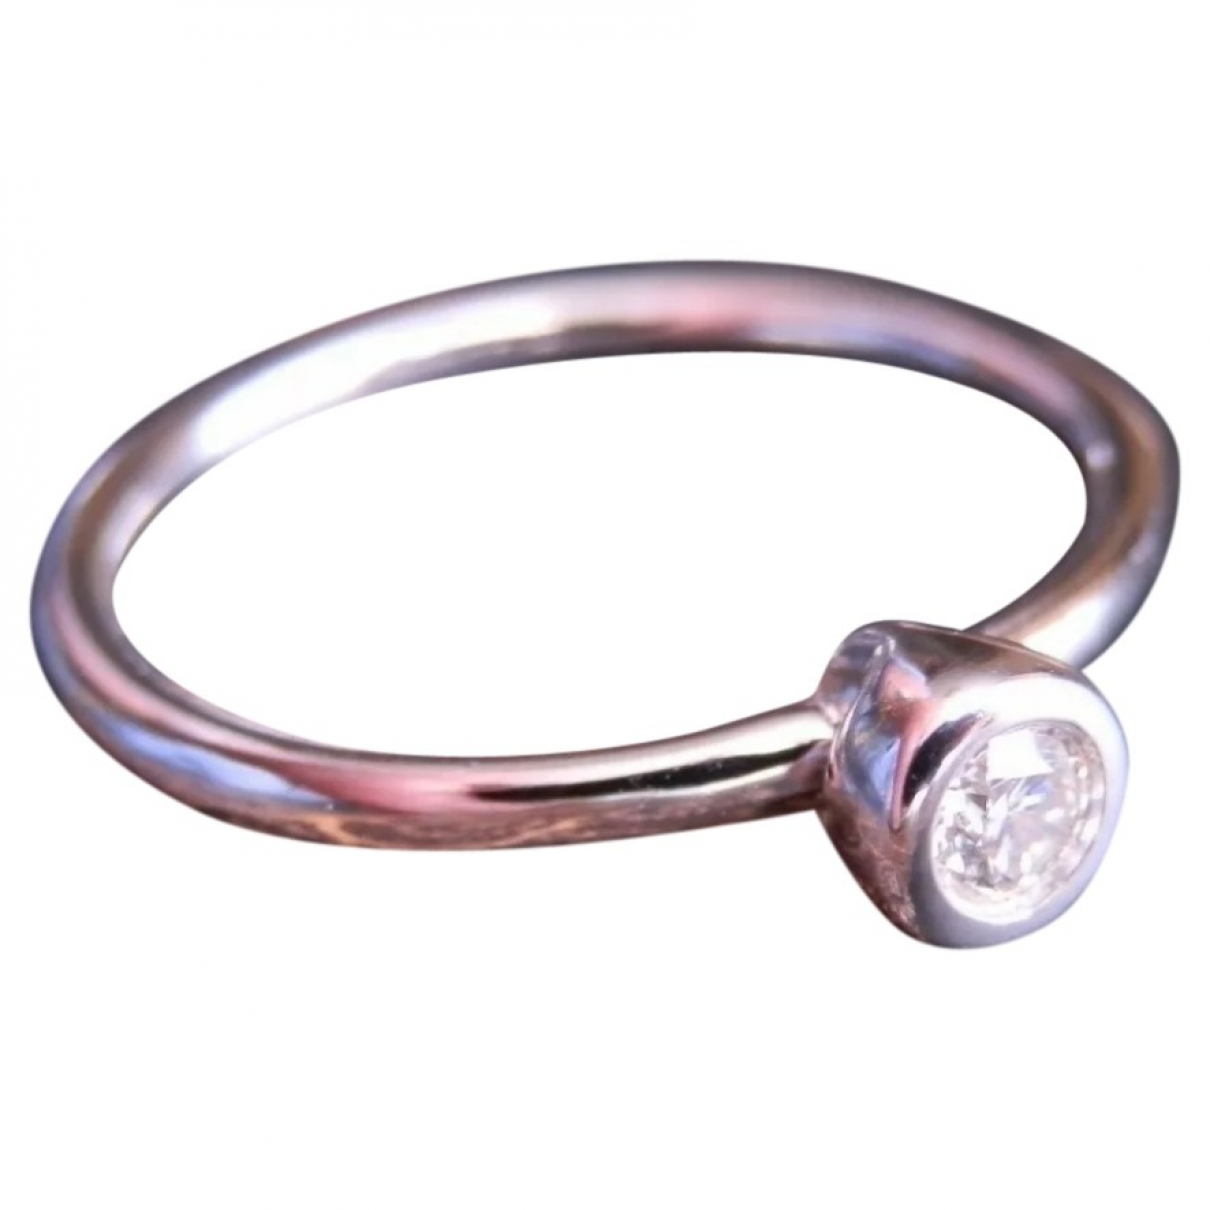 Ofee Carre Chic Ring in  Silber Weissgold